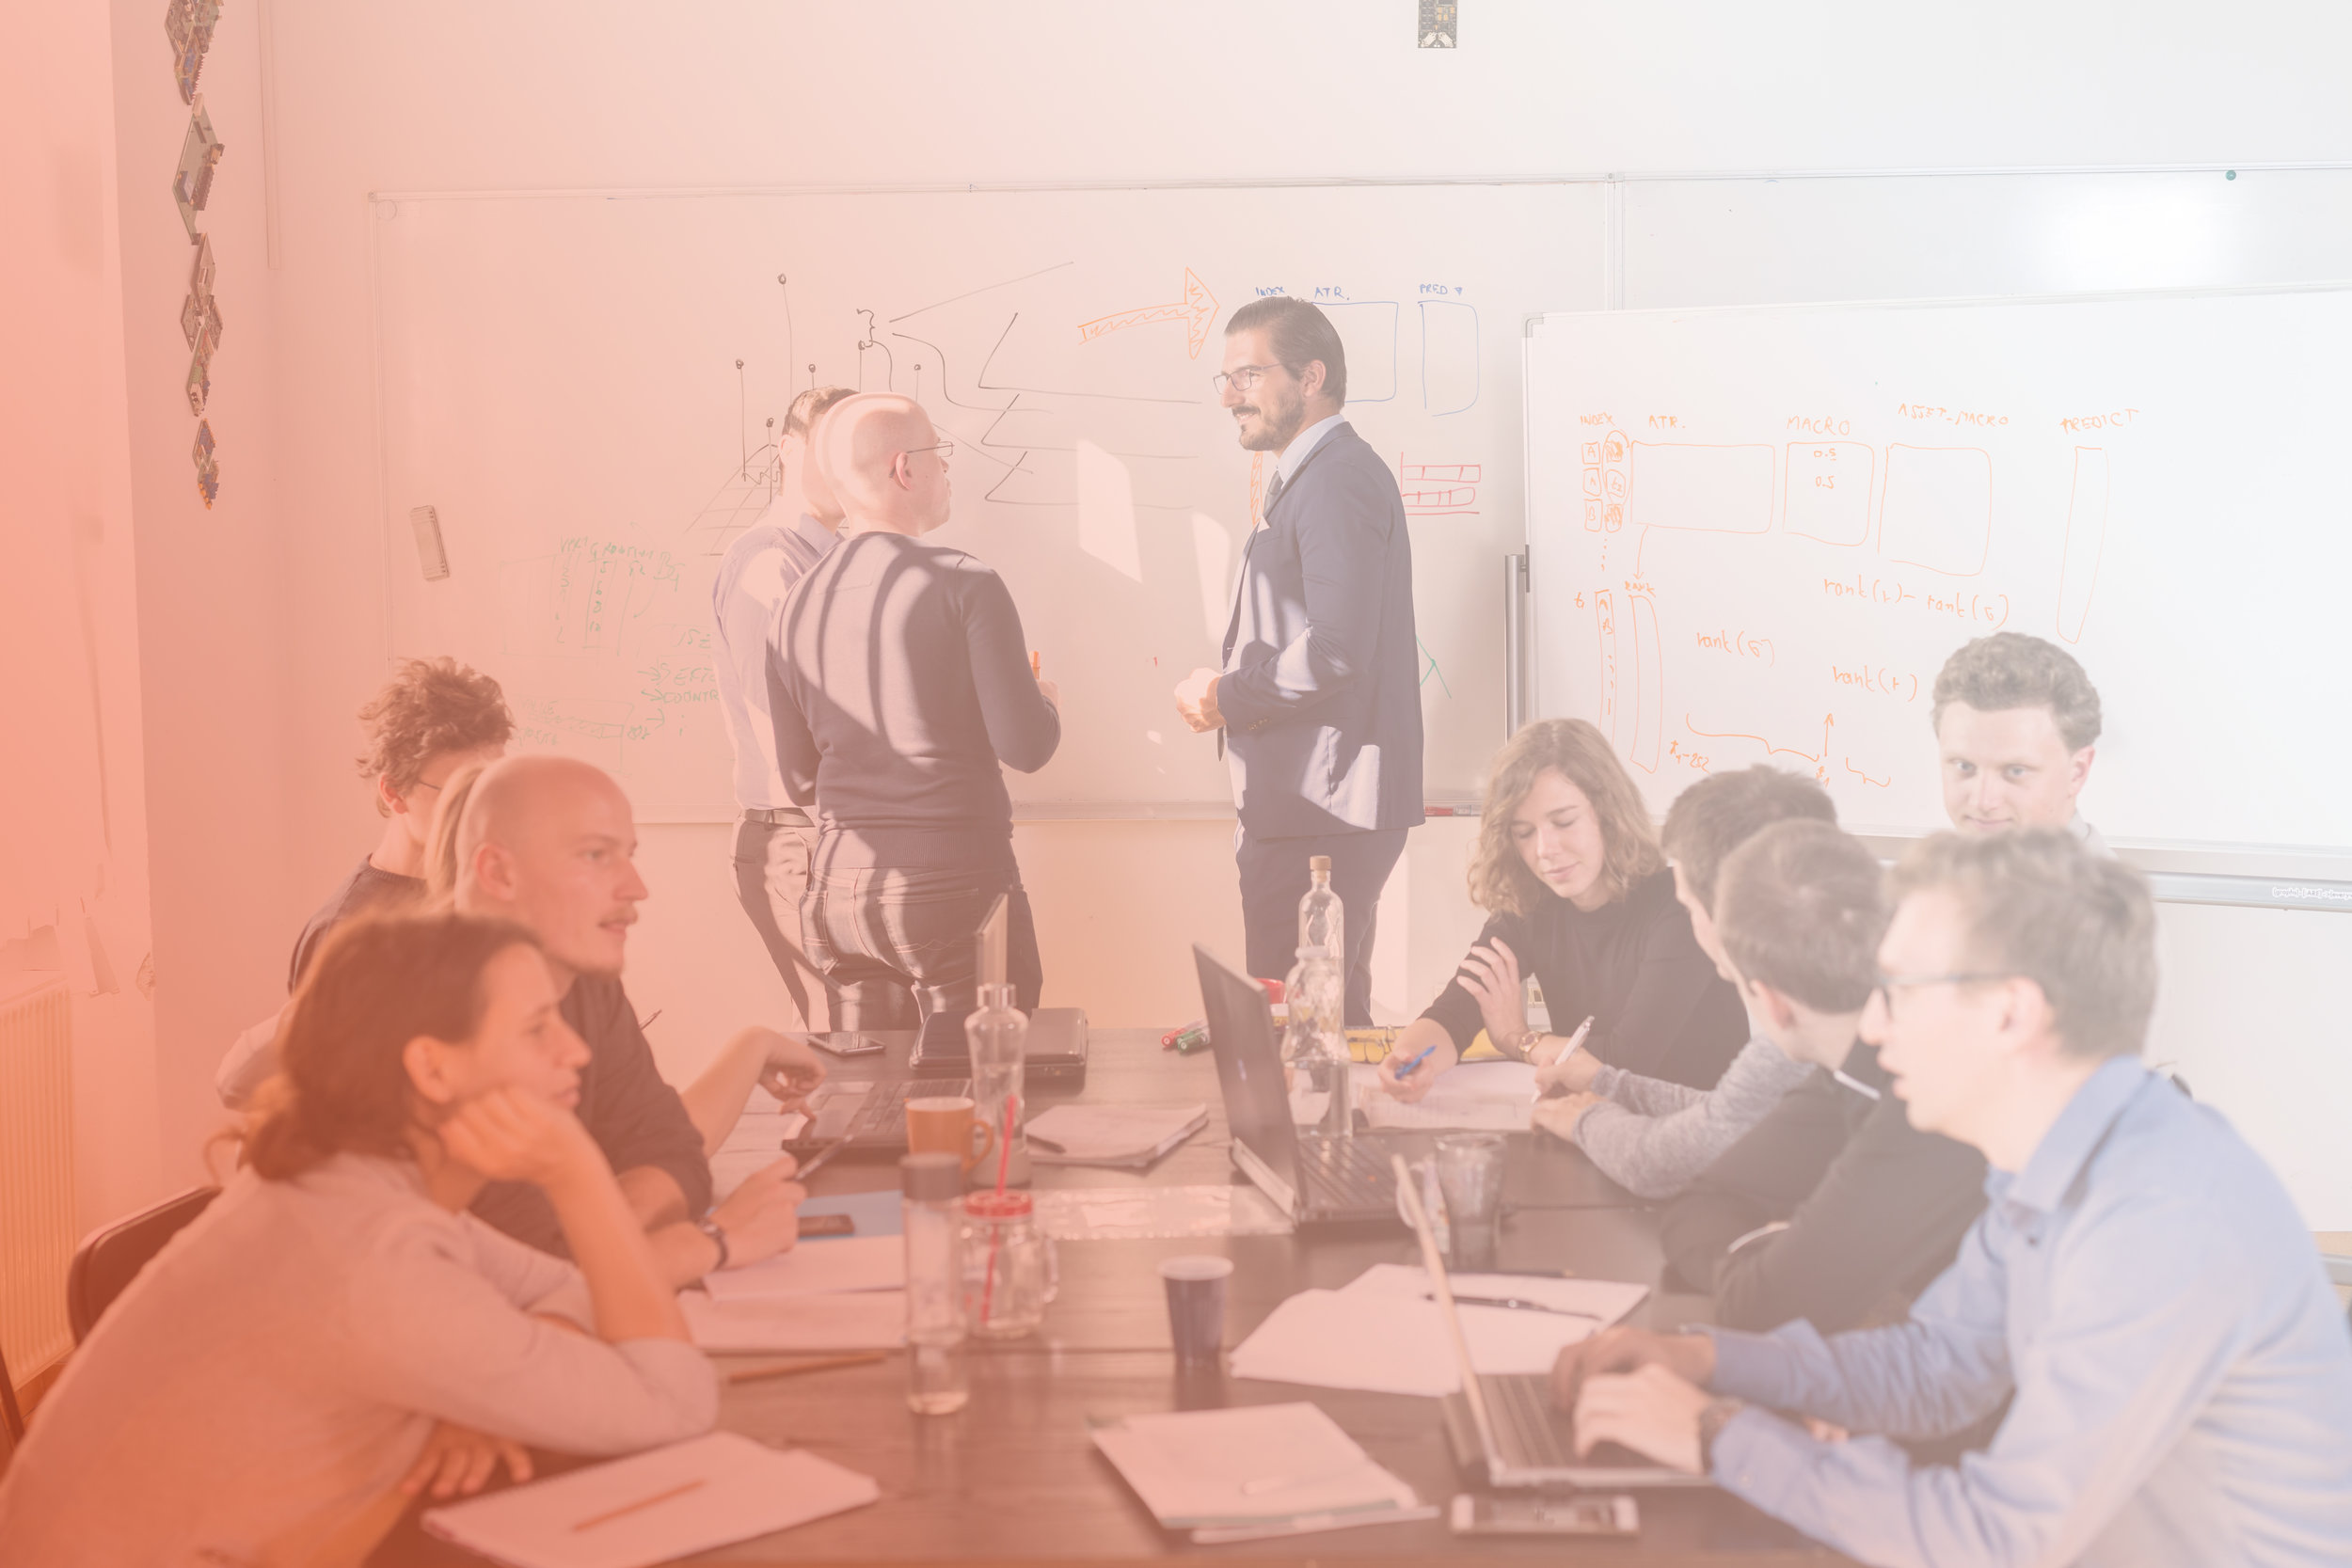 Digital Transformation Workshop - After an initial gathering of information, we design a custom 2-day workshopthat defines what digital transformation and innovation looks like for your business.